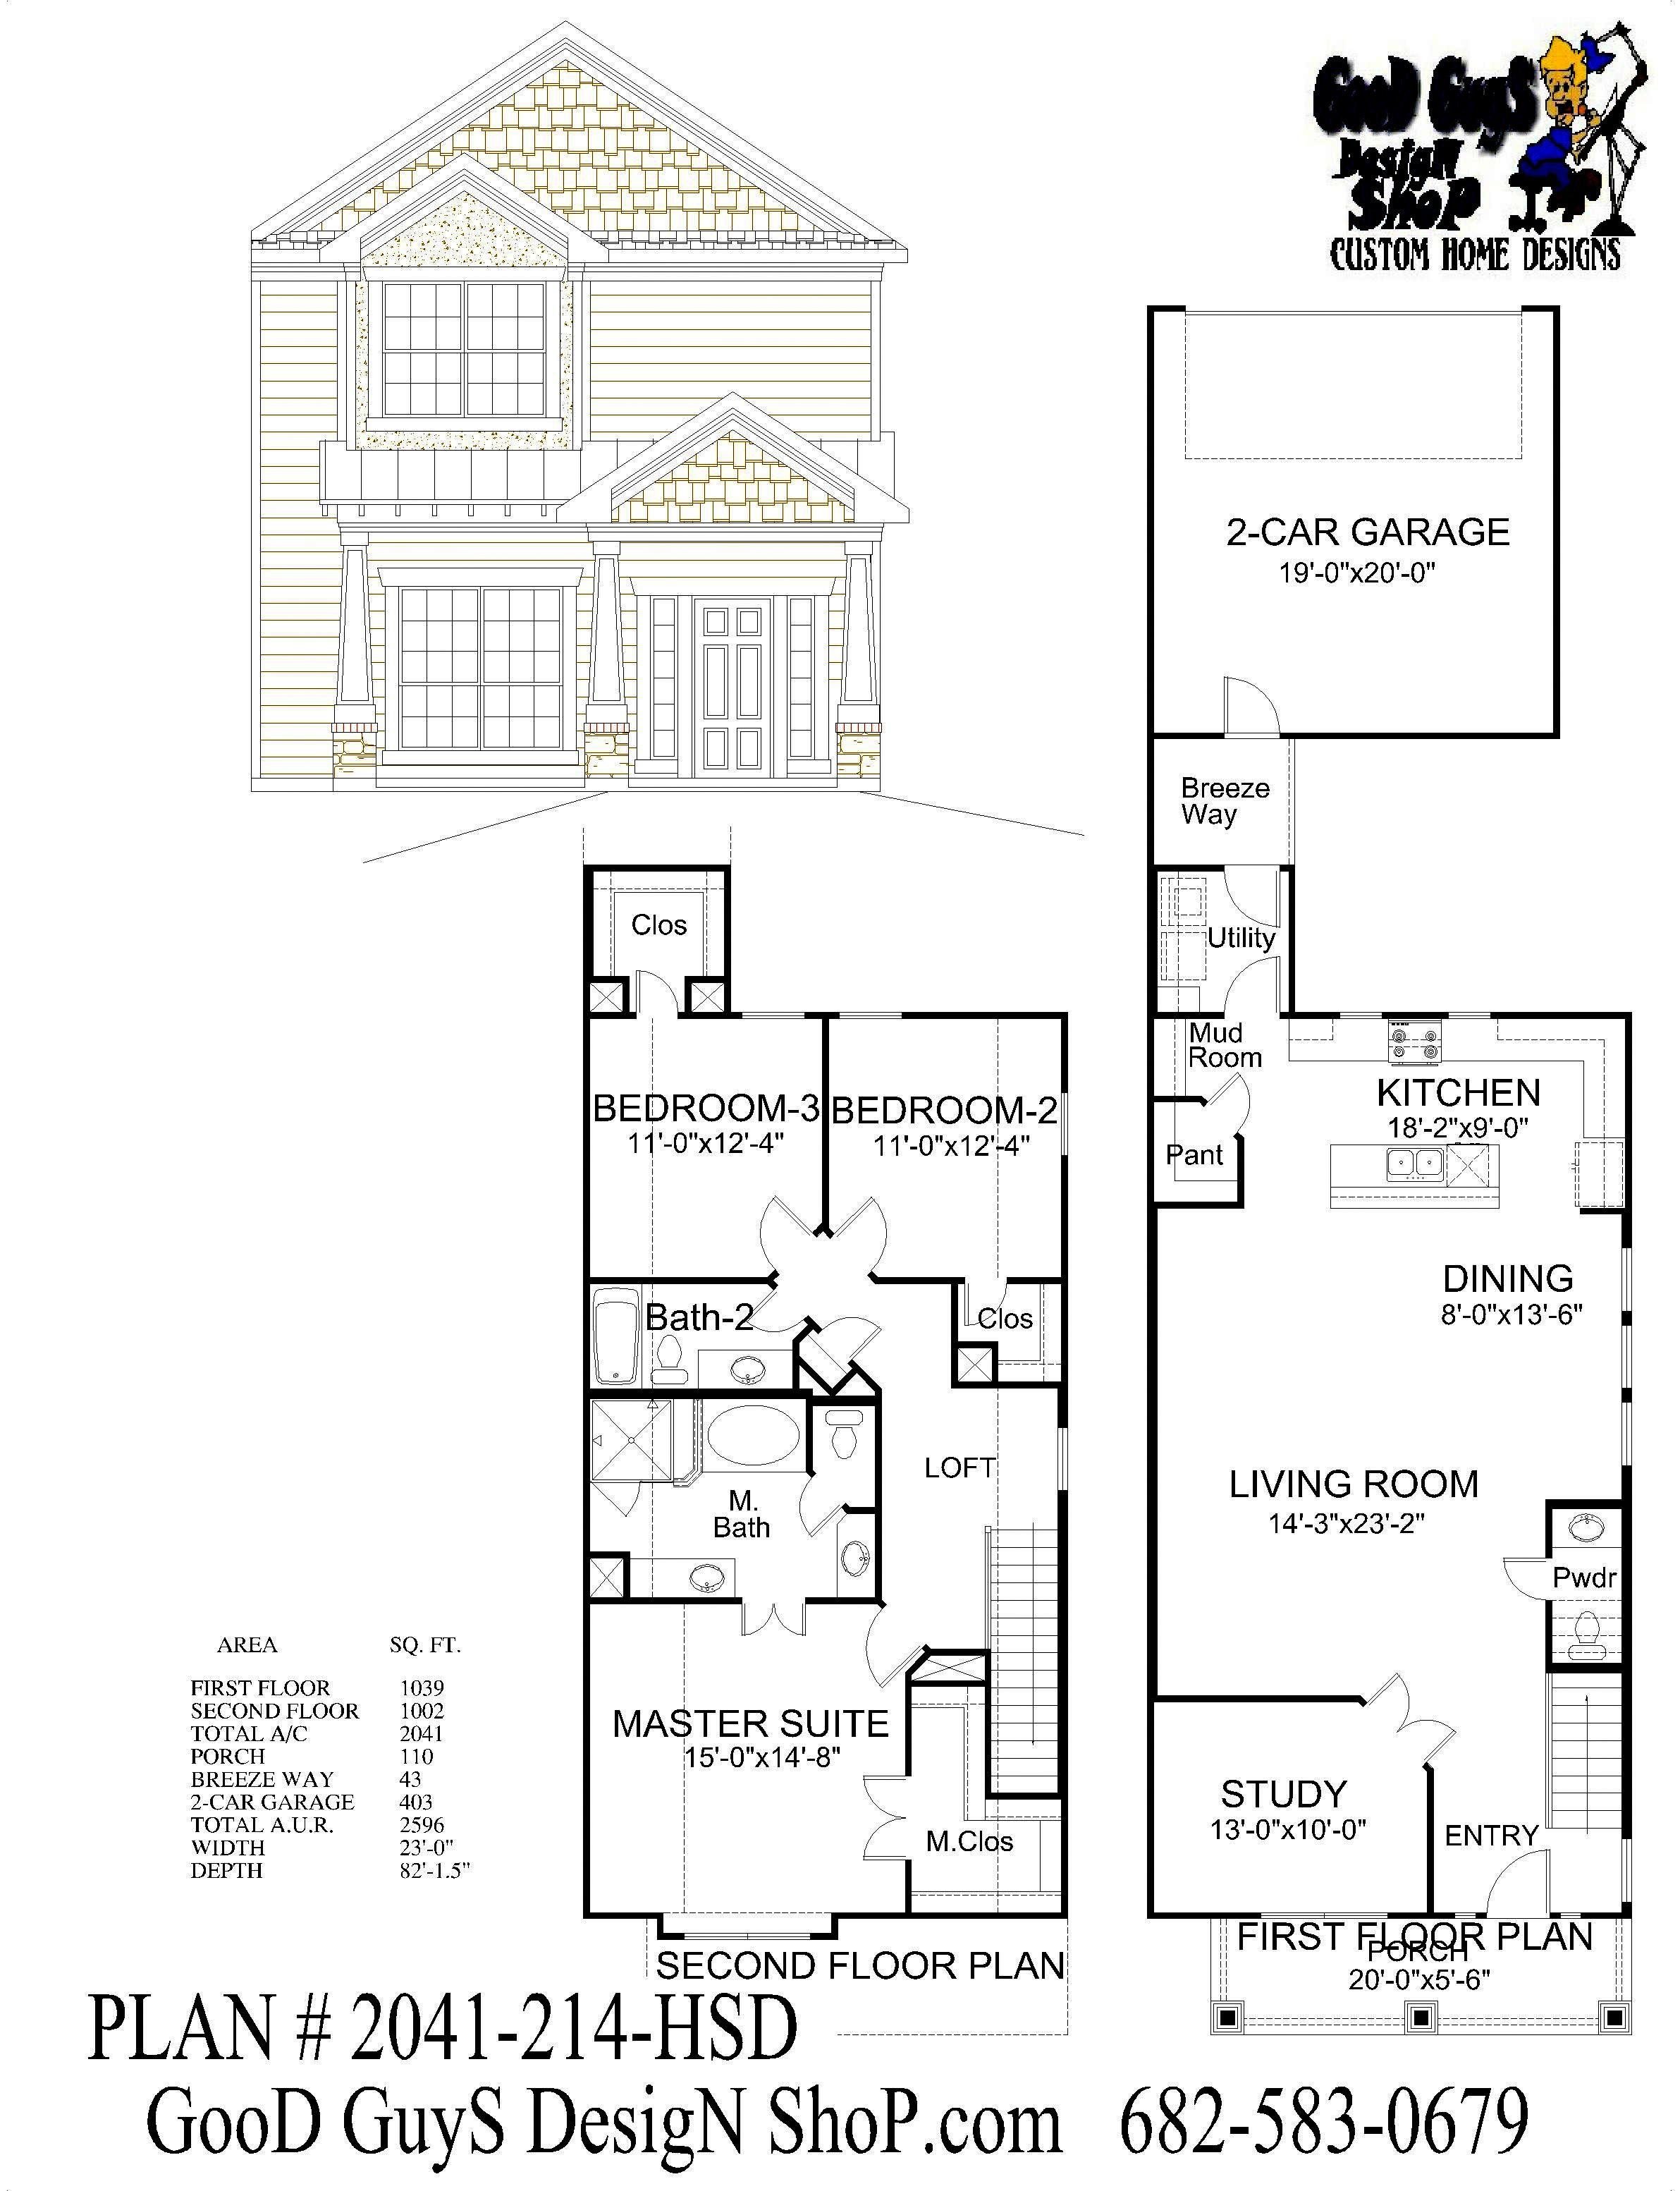 Plan 2041sqft 214 Hsd House Plans Custom Homes Custom Home Designs